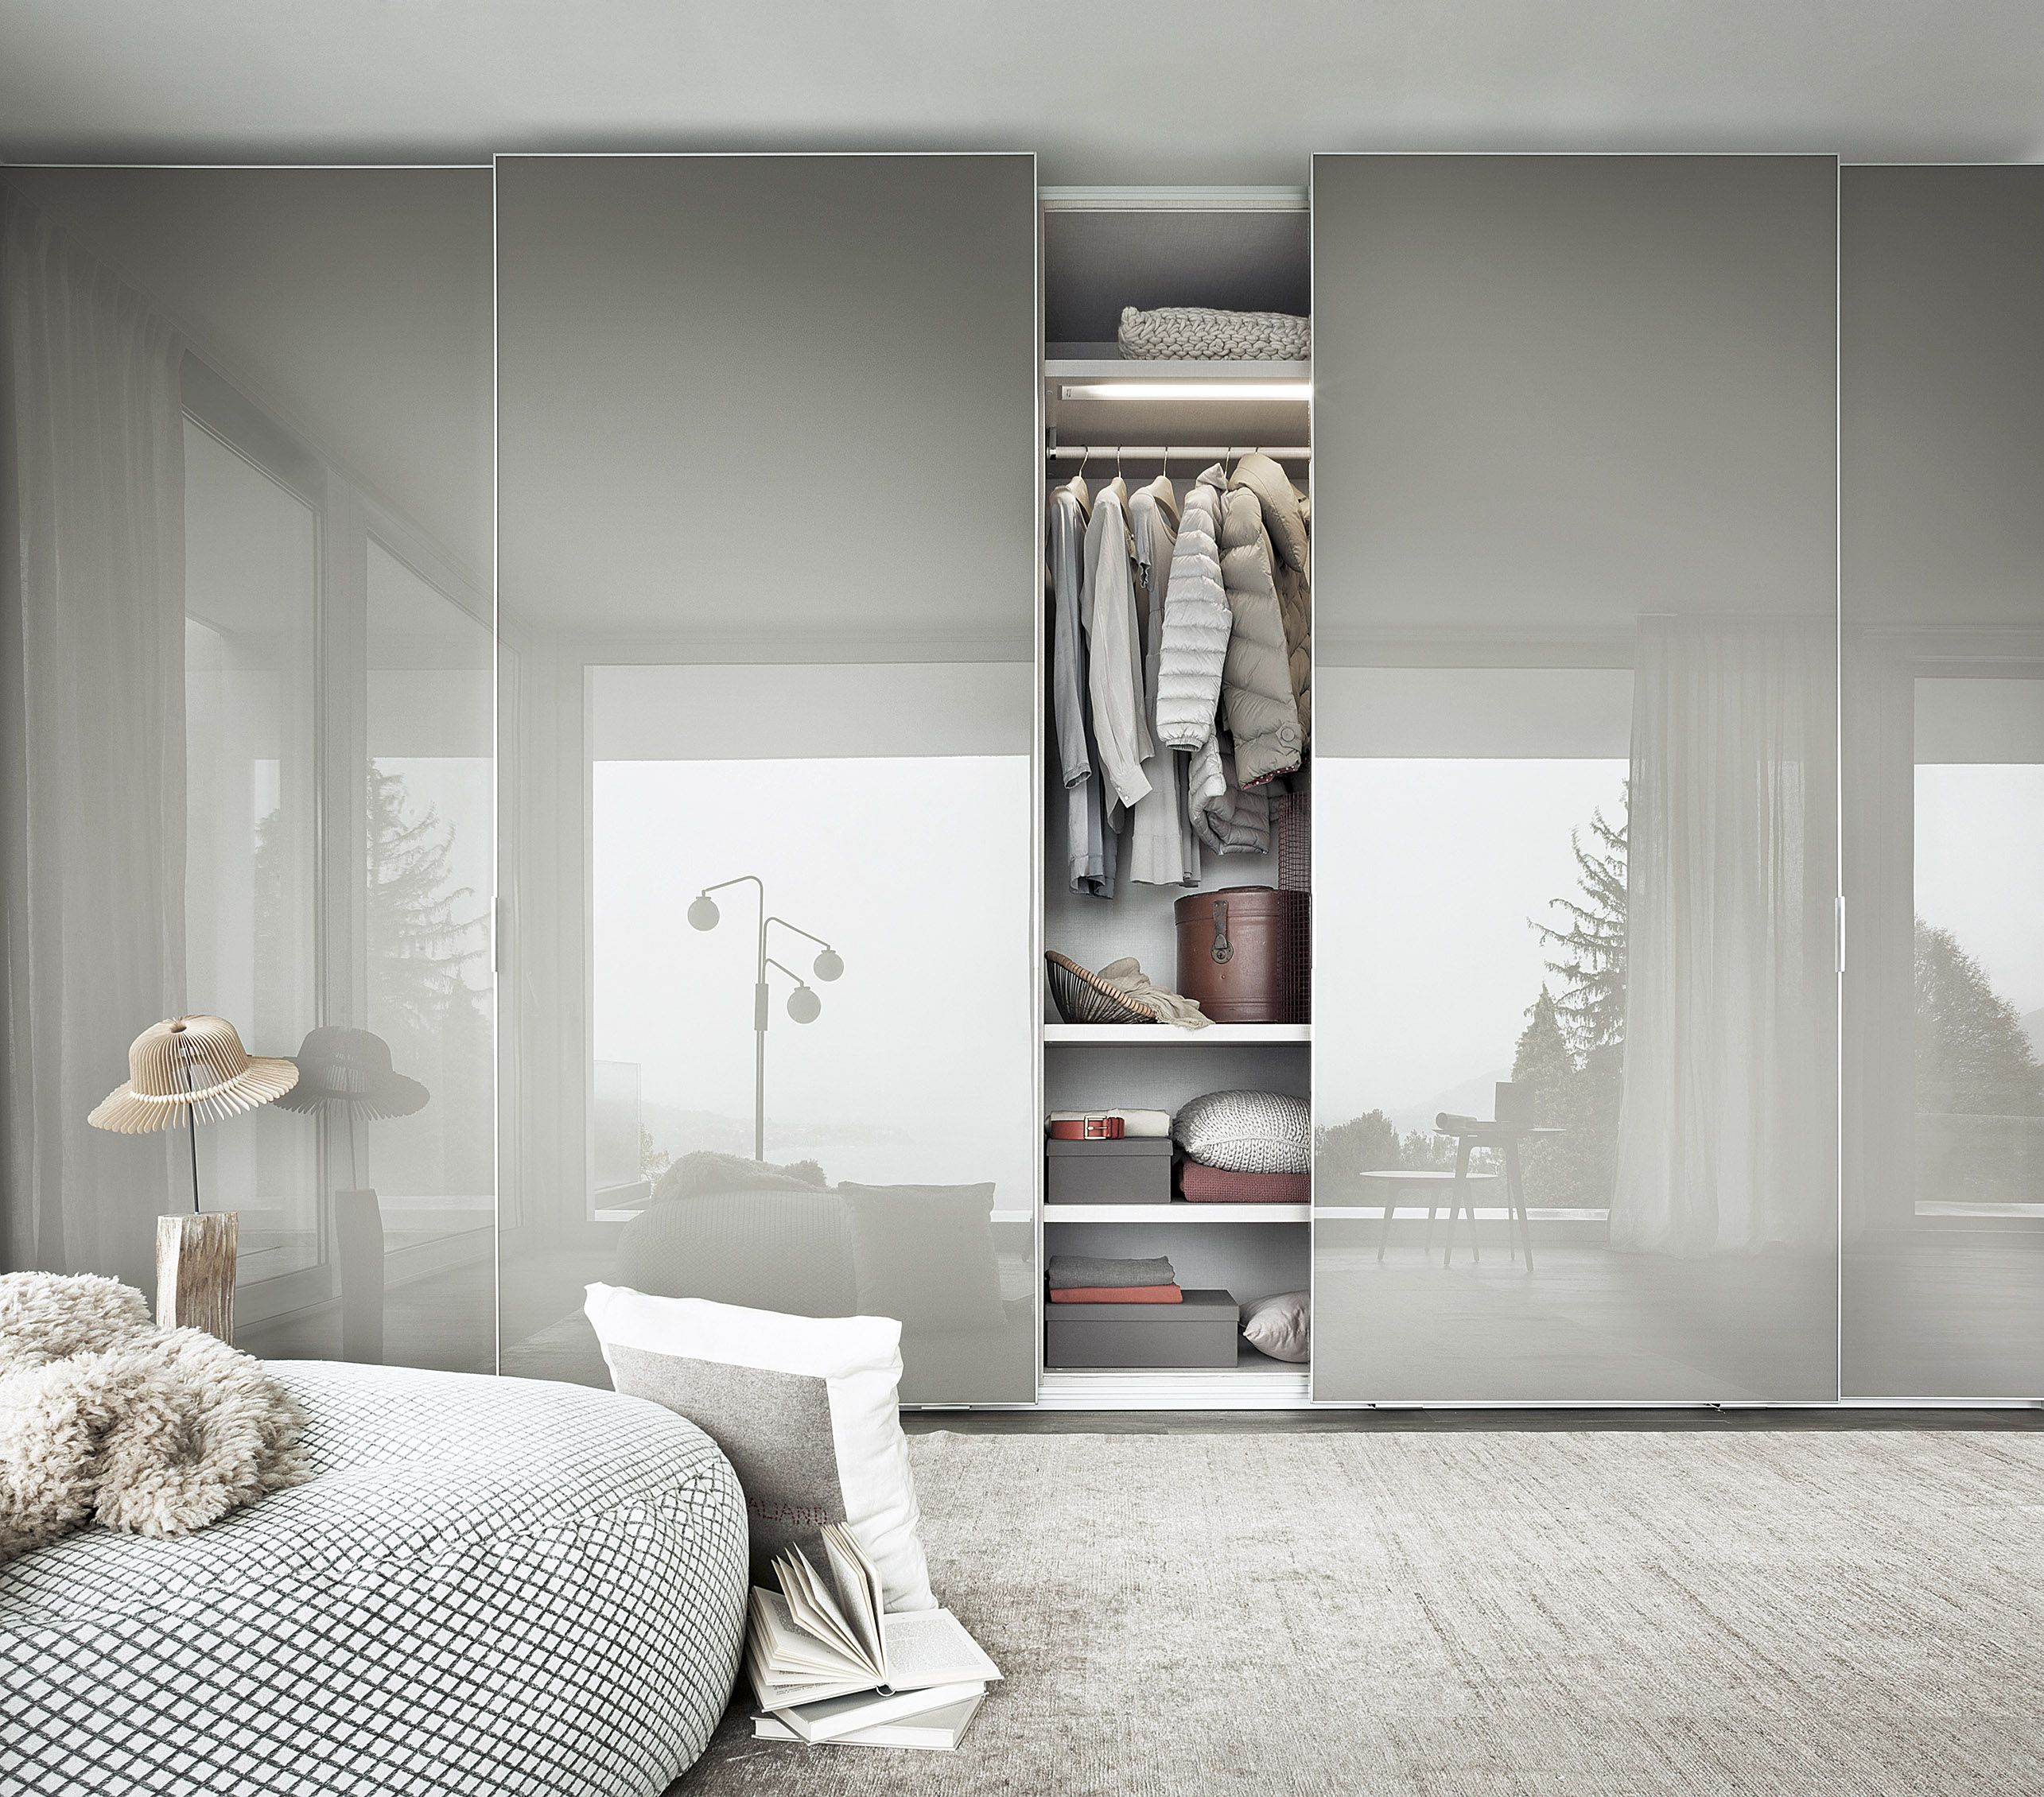 Sliding door wardrobe from italian design brand lema high gloss lema fina sliding door wardrobe modern sliding door wardrobe with glossy aluminium frame from top italian manufacturer of furniture and storage lema eventelaan Gallery